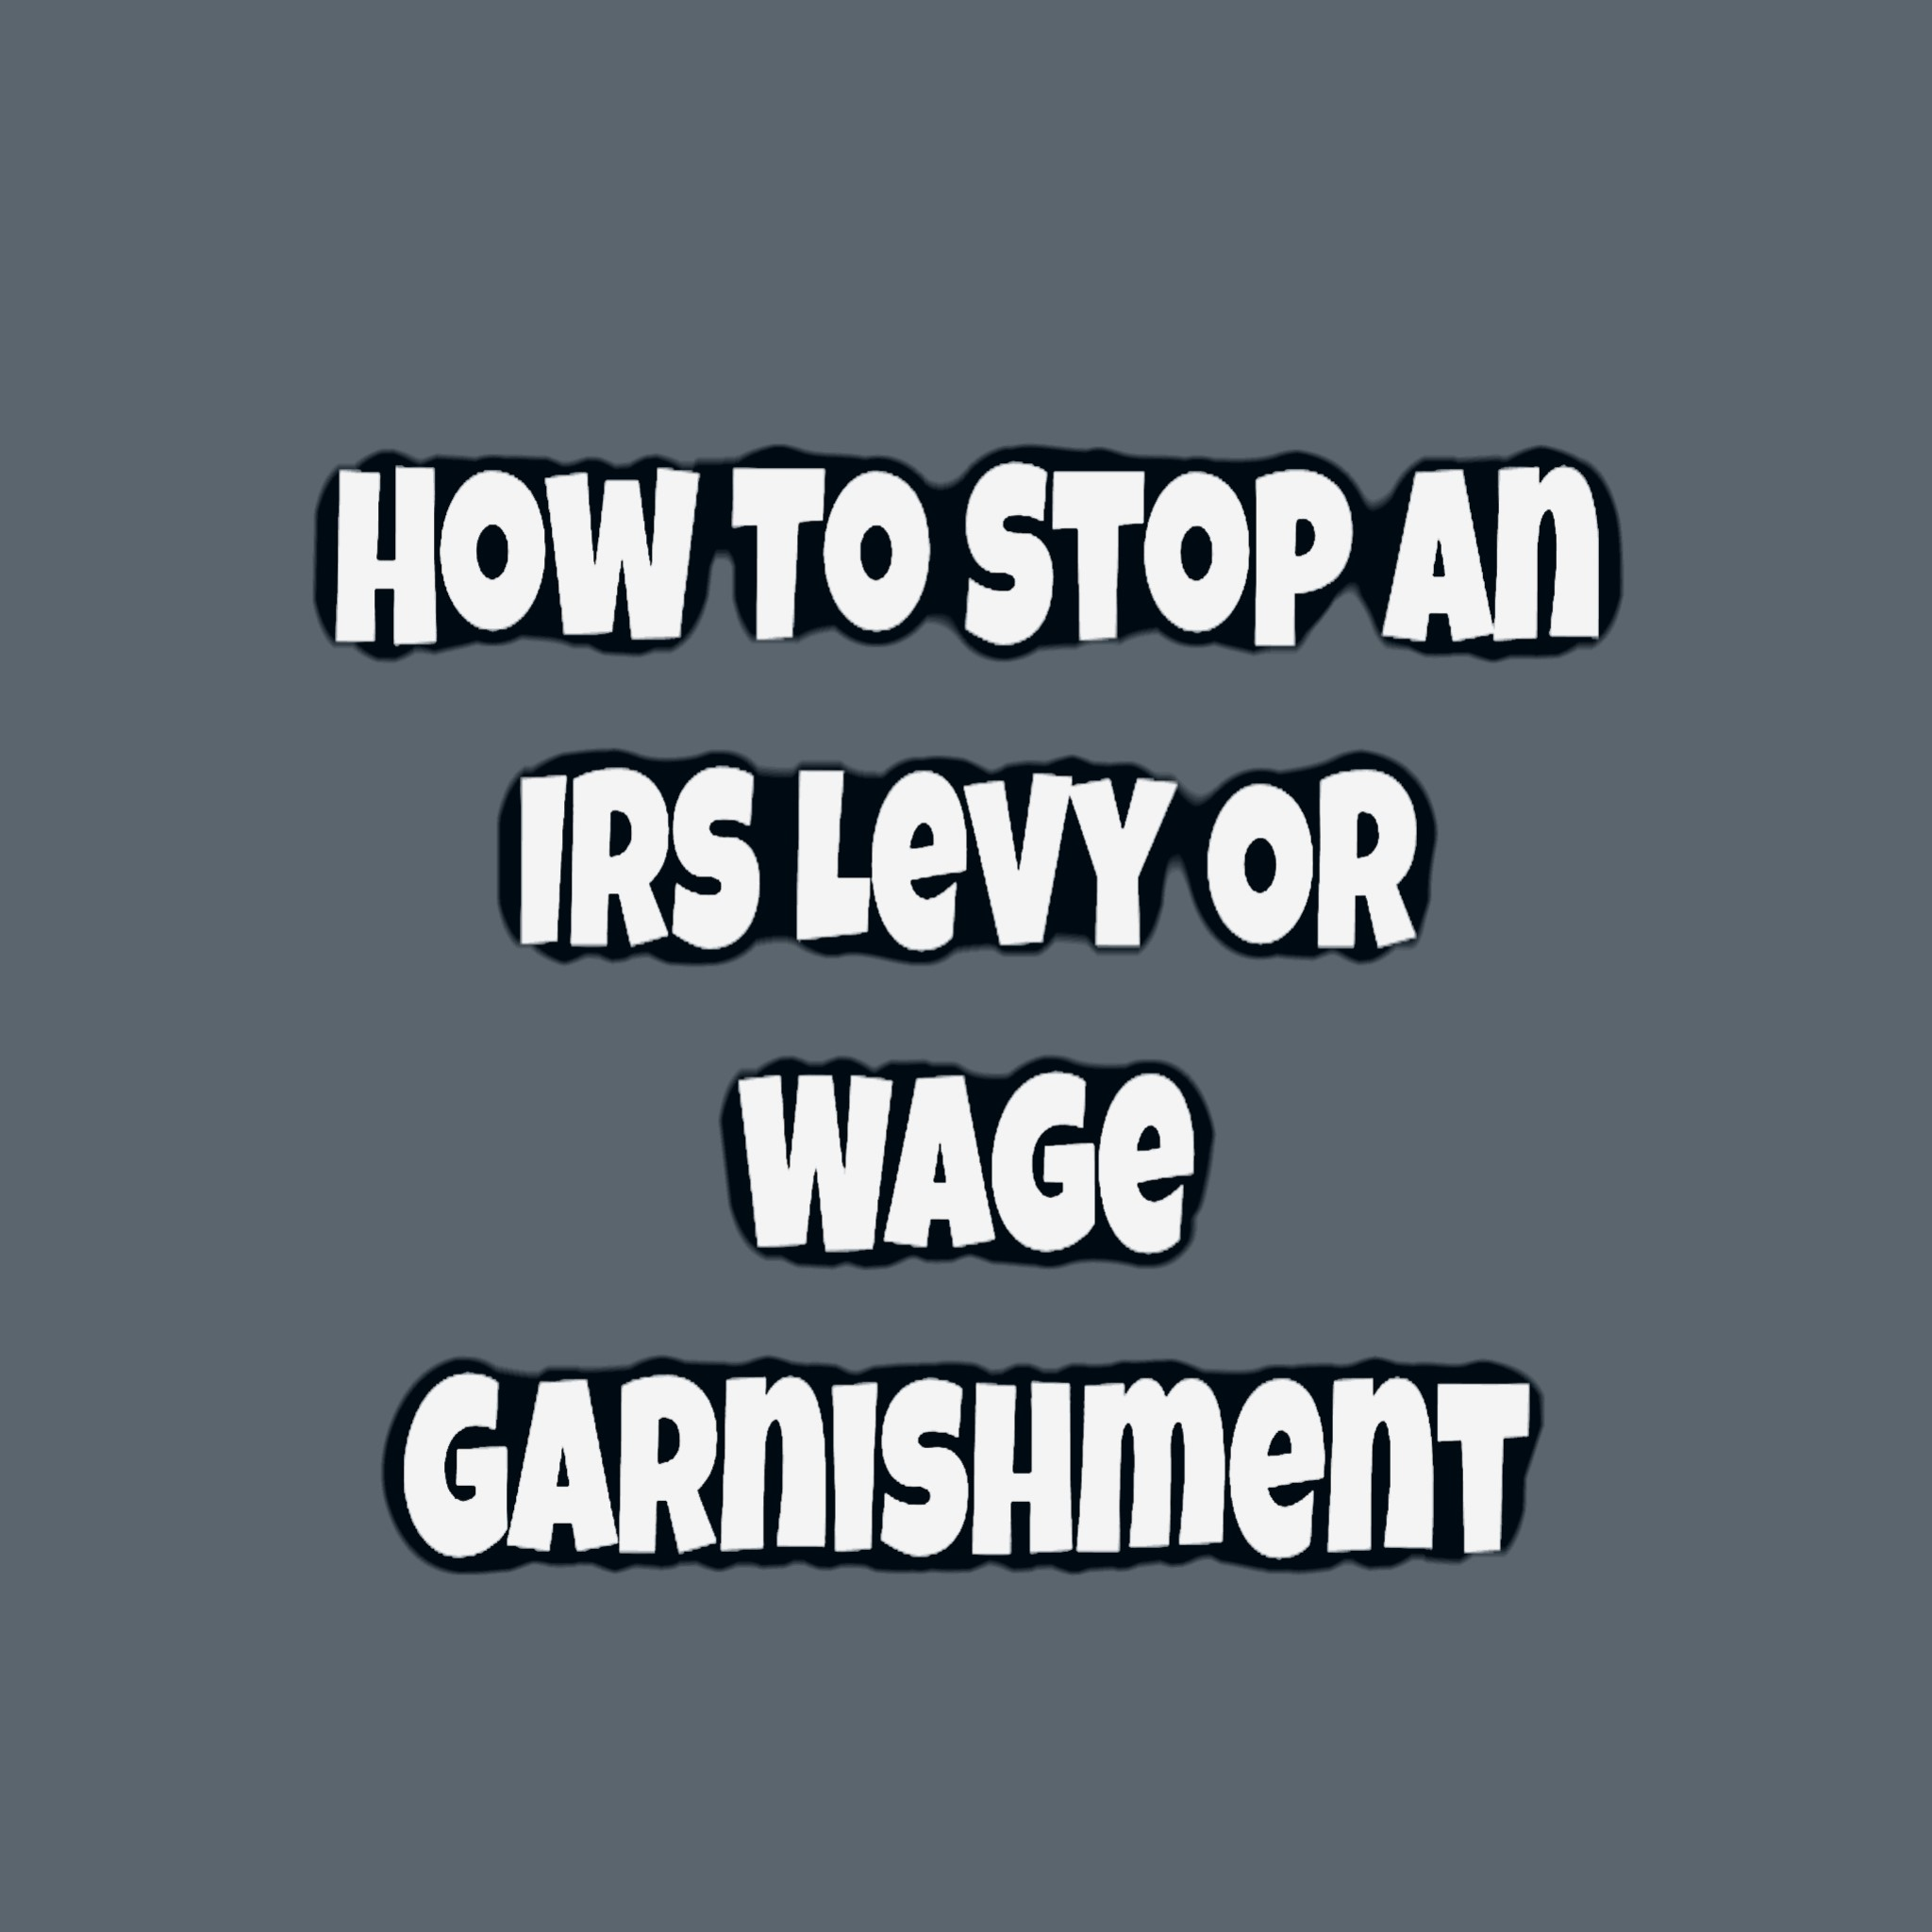 How To Stop An IRS Levy Or Wage Garnishment